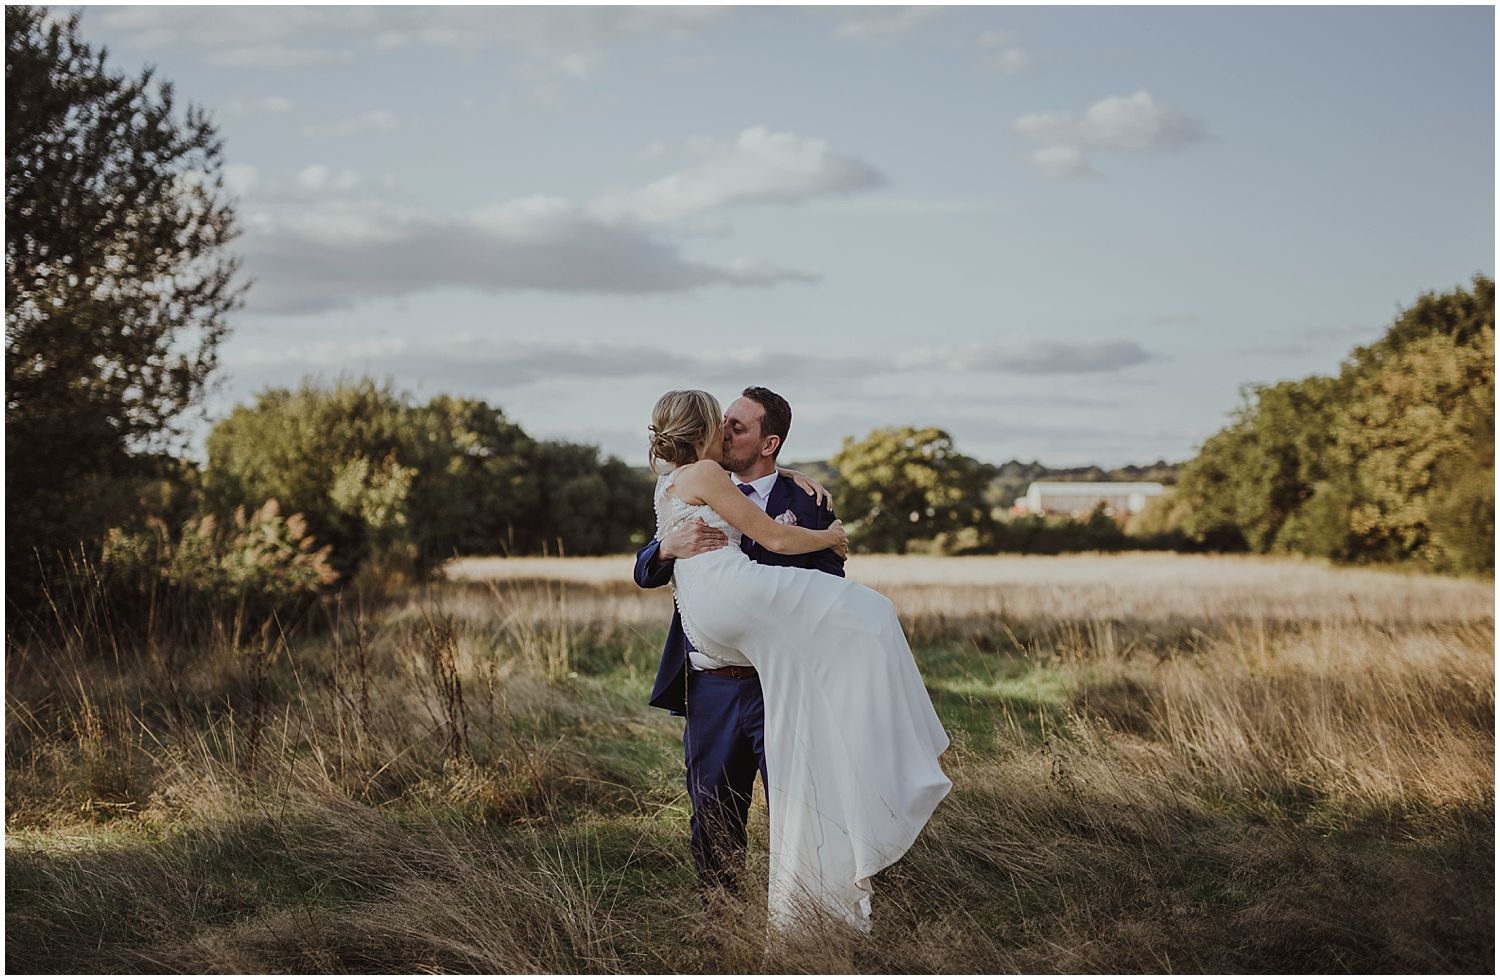 Golden hour wedding photo at Smallfield Place